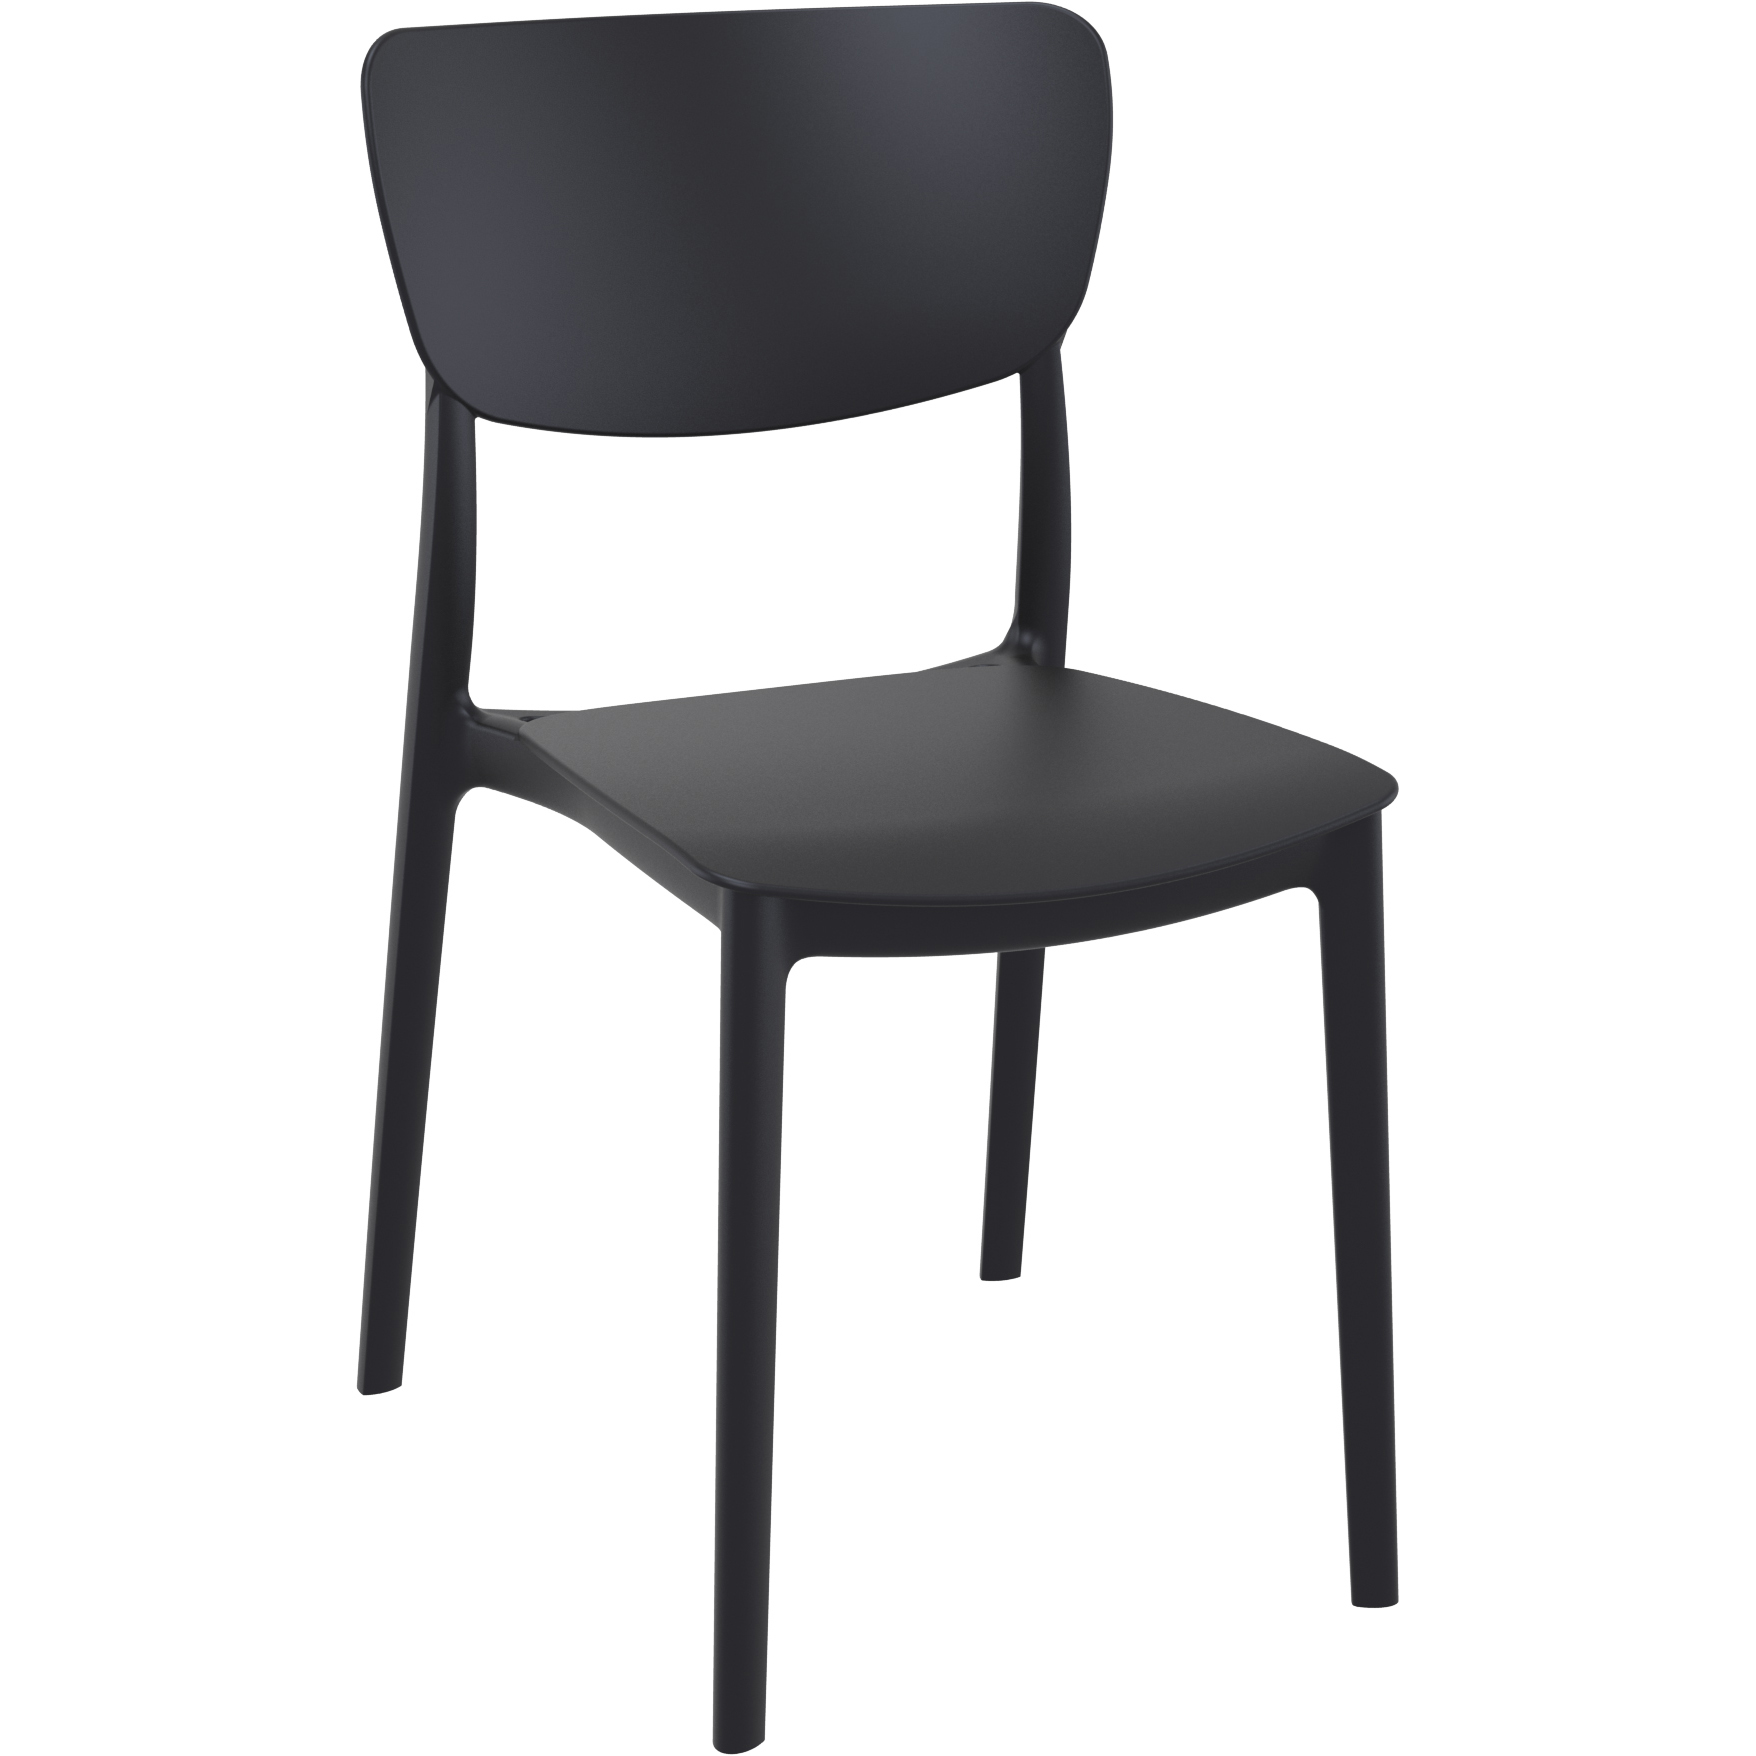 Monna Chair - Black